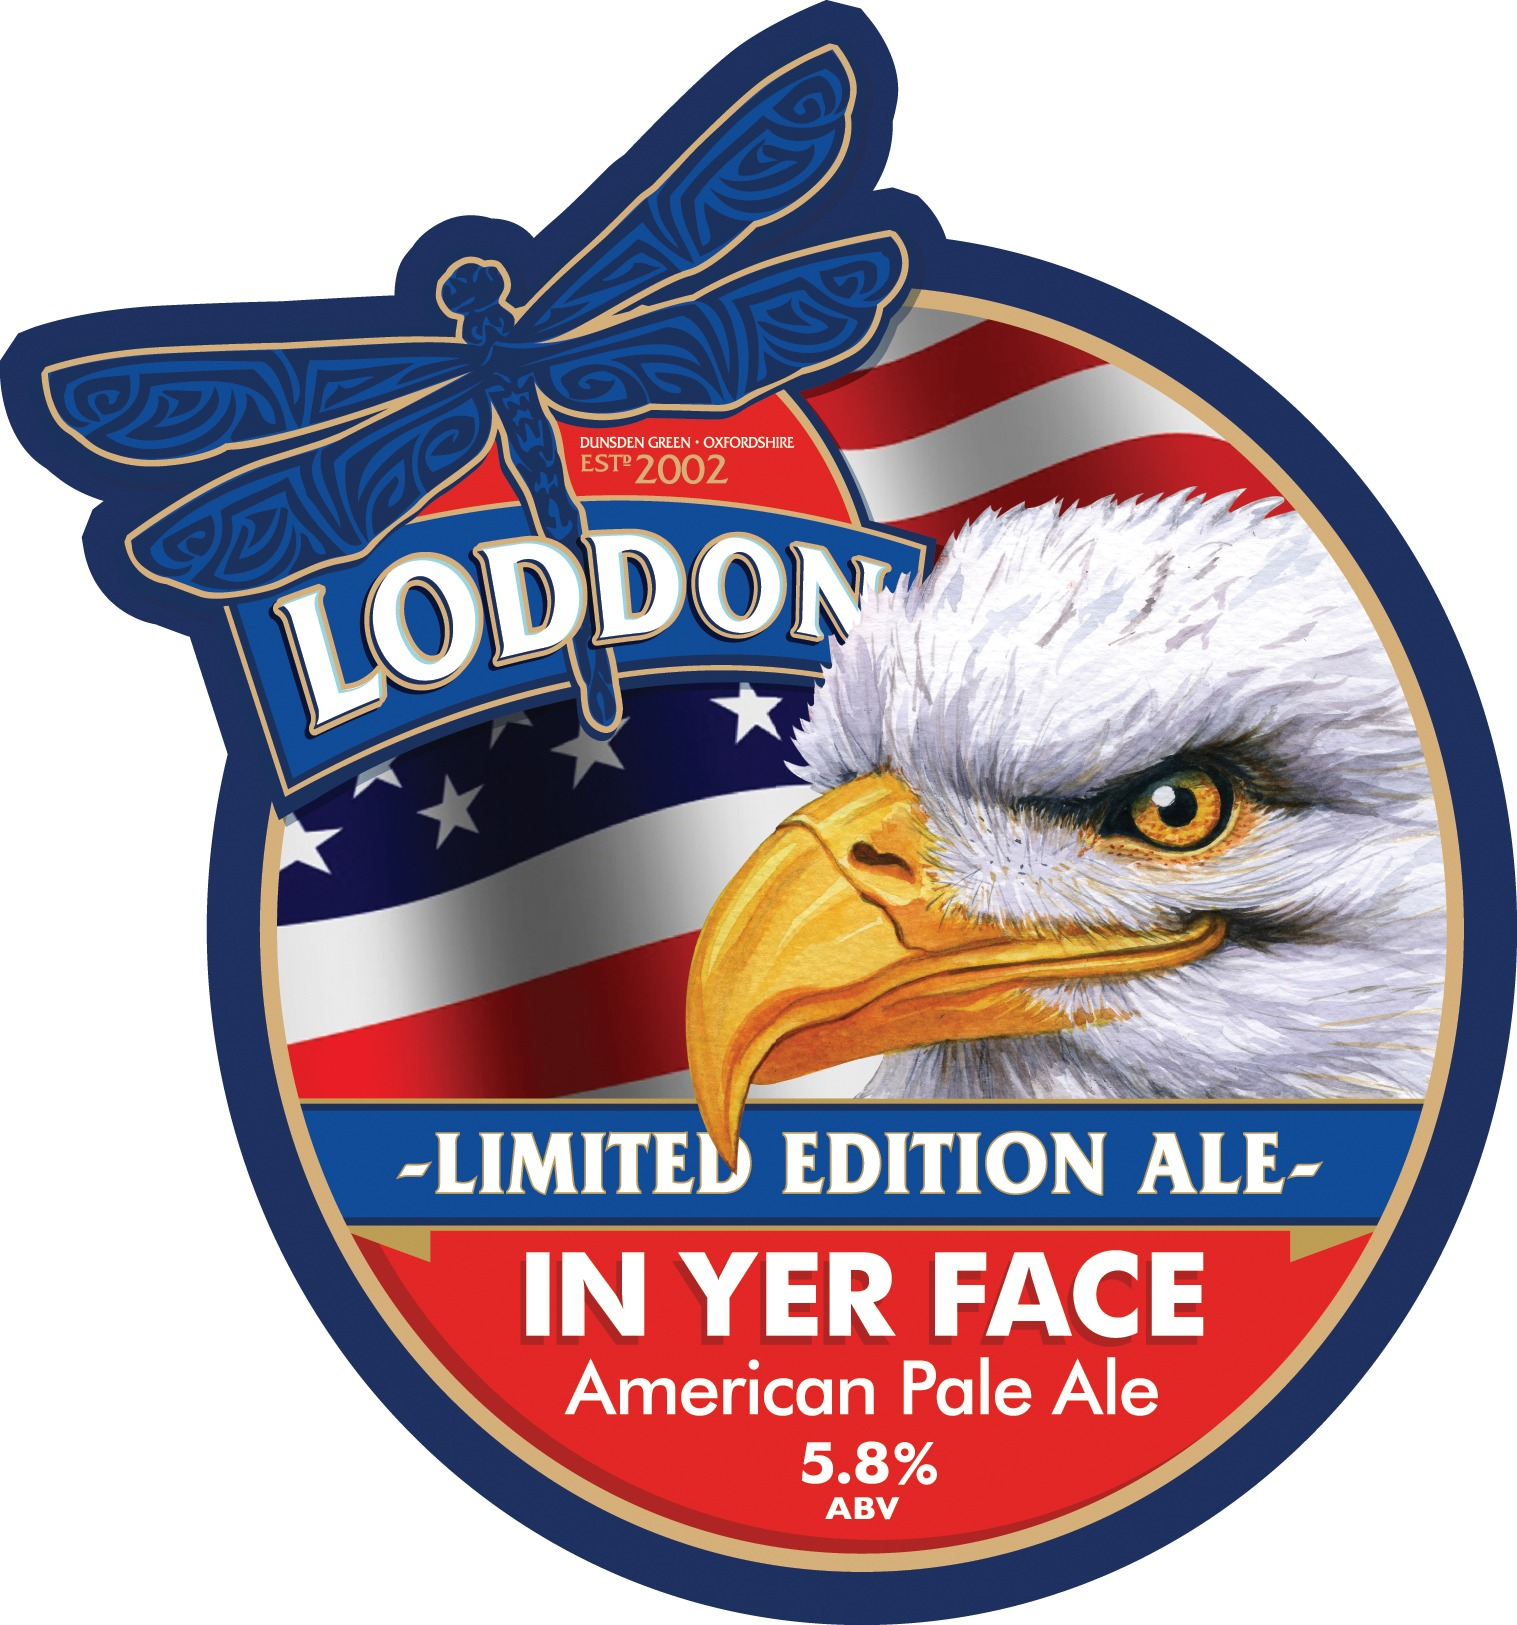 Loddon Brewery Limited Edition Ale - In Yer Face